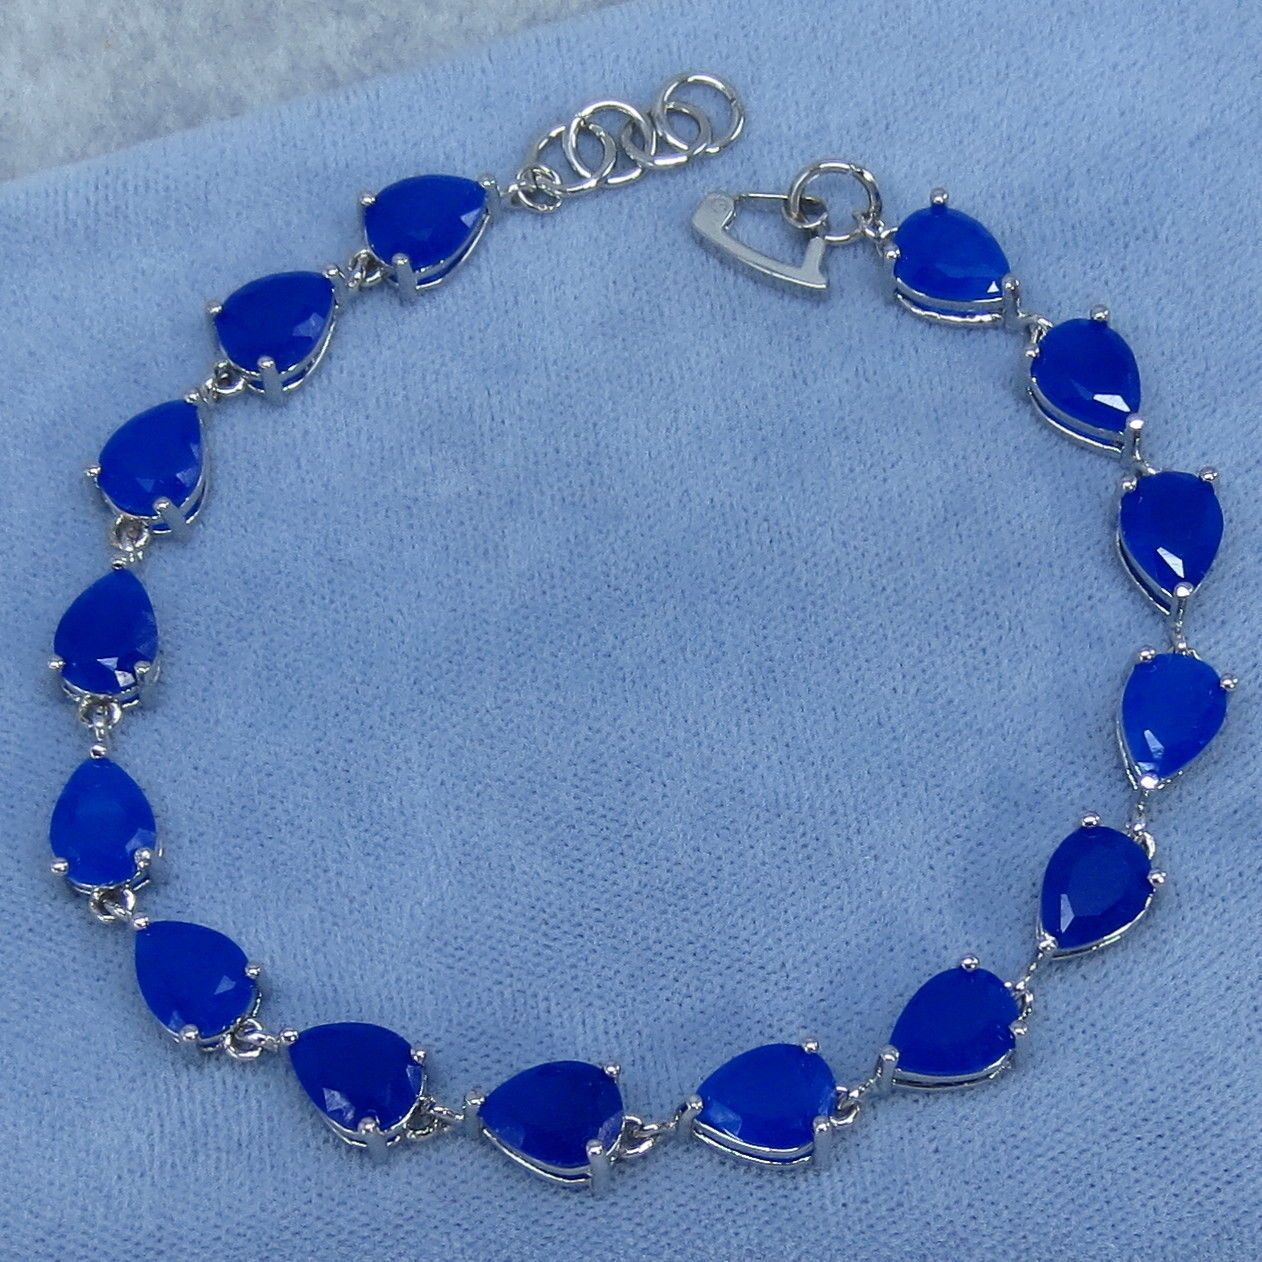 en synthetic diffusion cut oval diffused sapphire of blue picture cts